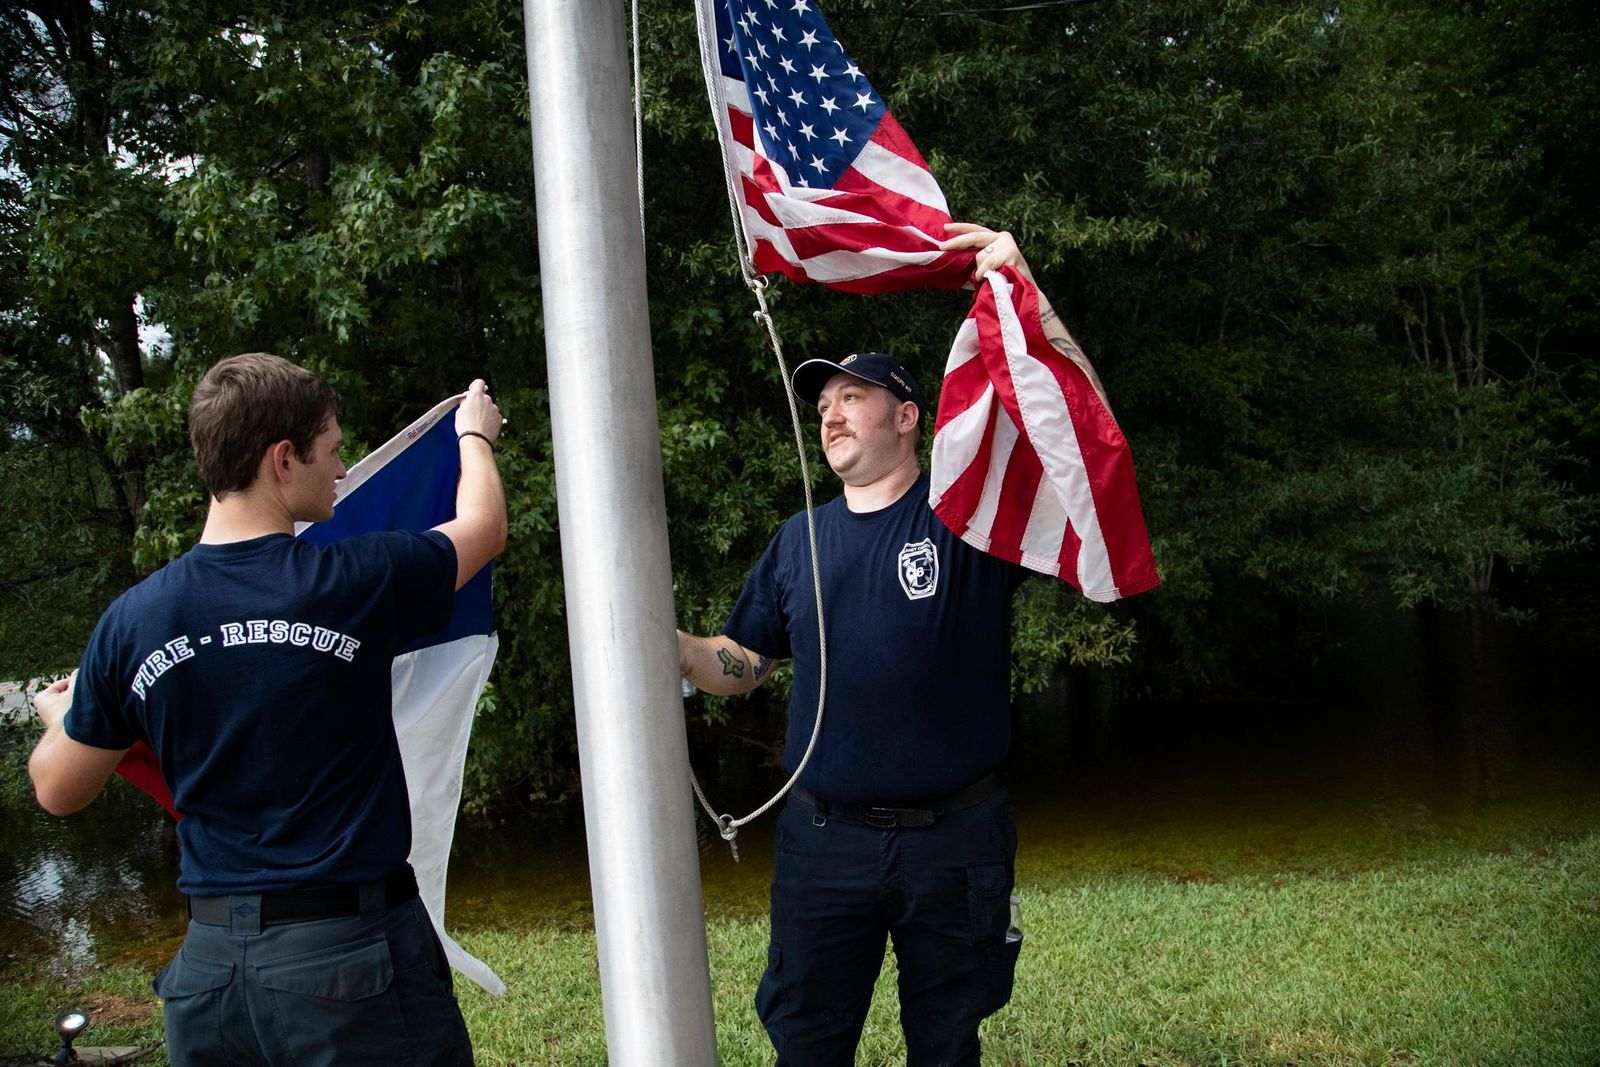 Caney Creek Fire Department firefighters Avery Aultman, 21, left, Luke Hancock, 24, right, raise the United States flag and the Texan flag while cleaning up the fire station on Friday, Sept. 20, 2019, in Conroe, Texas, after it got flooded on Thursday. Floodwaters are starting to recede in most of the Houston area after the remnants of Tropical Storm Imelda flooded parts of Texas. (Marie D. De Jesus/Houston Chronicle via AP)